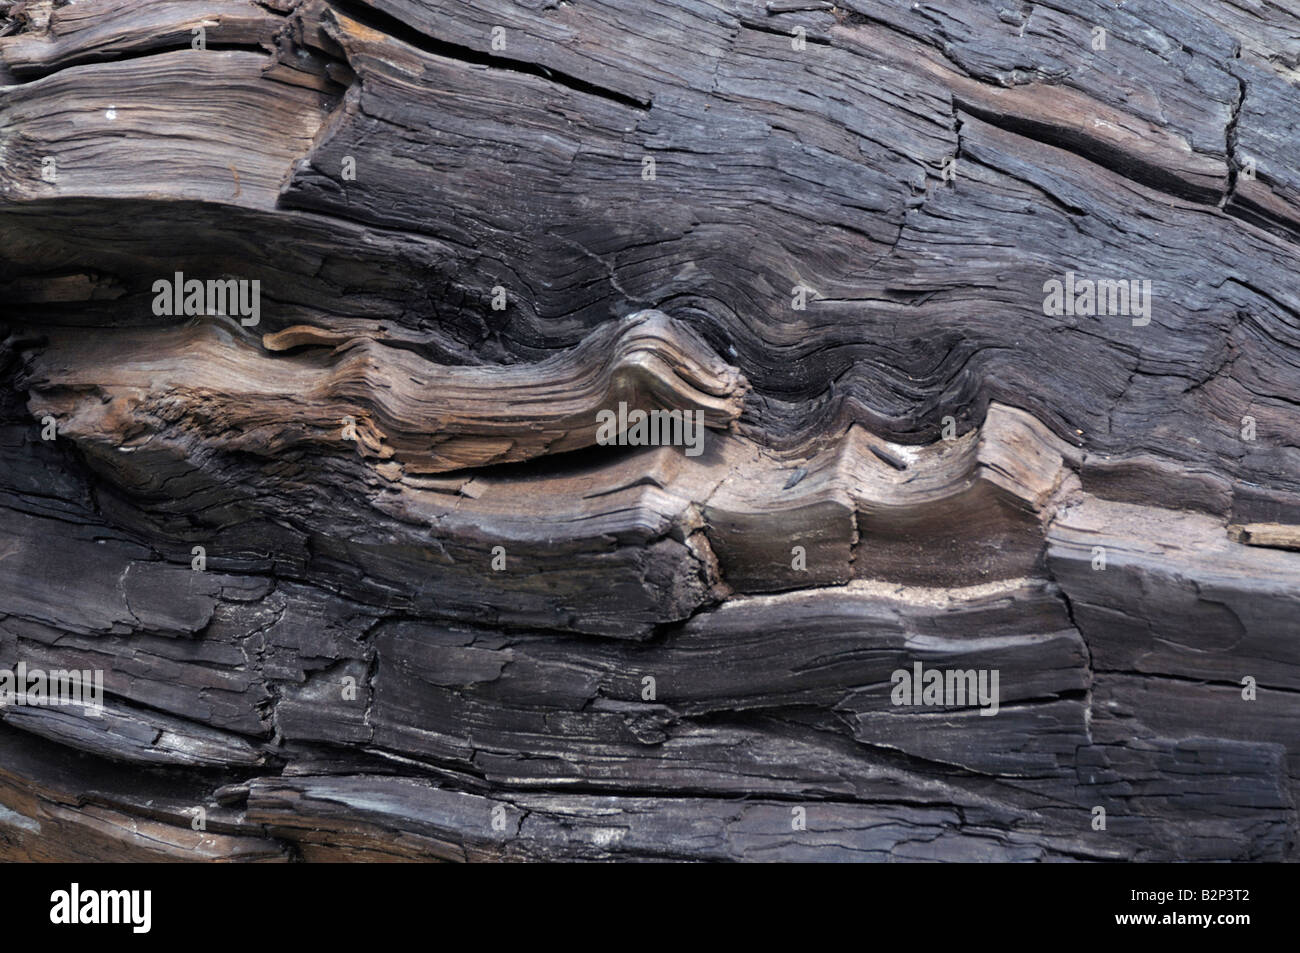 Lignite or brown coal (Metasequoia) from open cast mining in Brandenburg, Germany - Stock Image